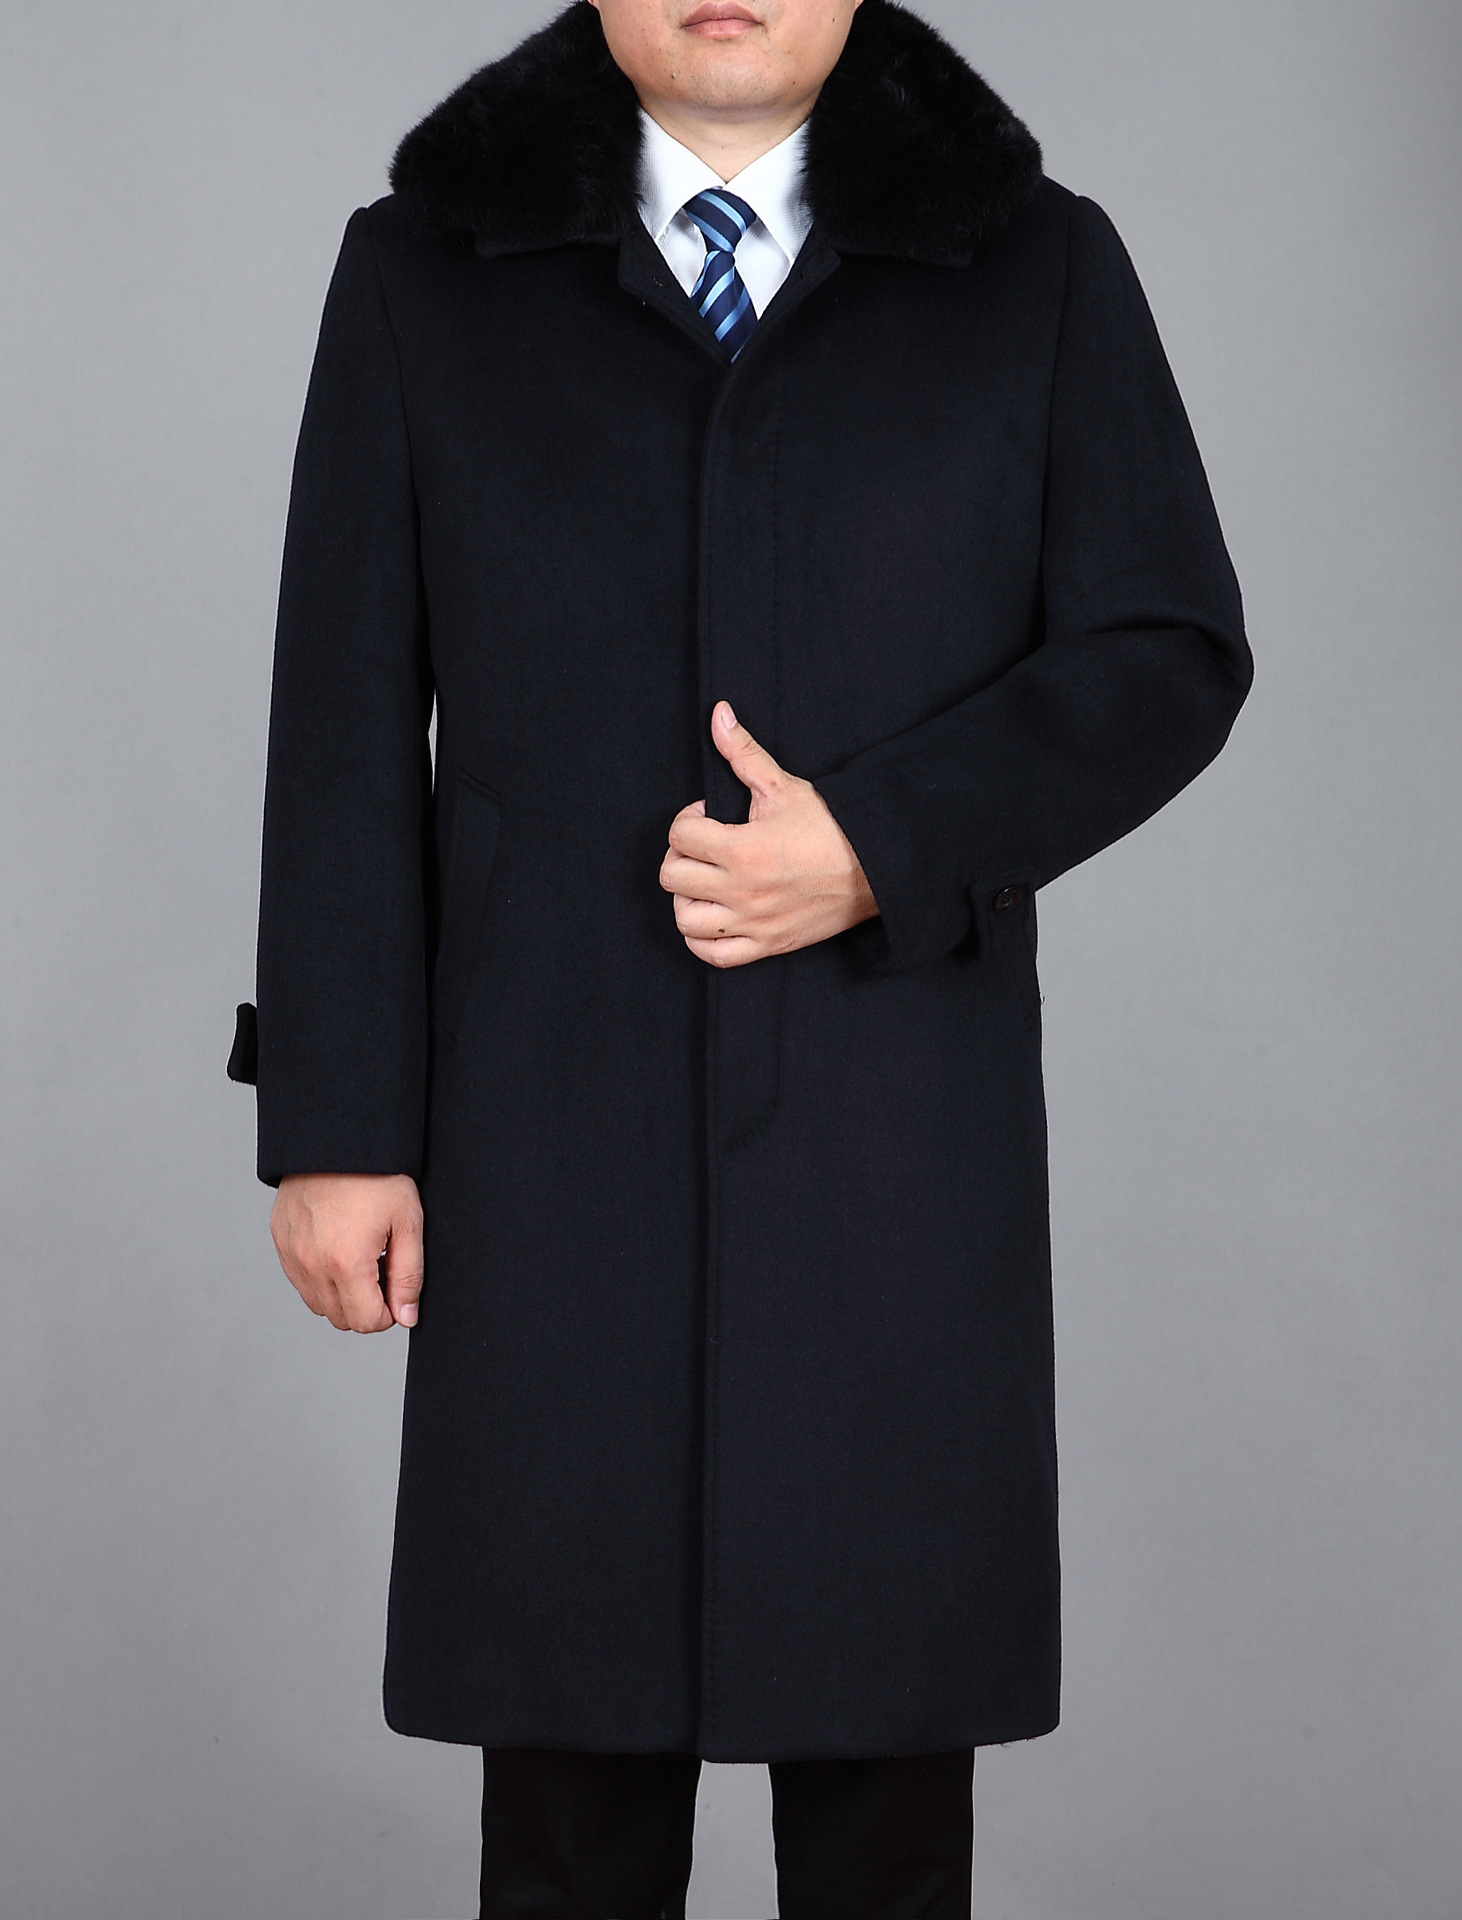 Mens Wool Coats And Jackets Men's Cashmere Coat Long Suit Jacket ...